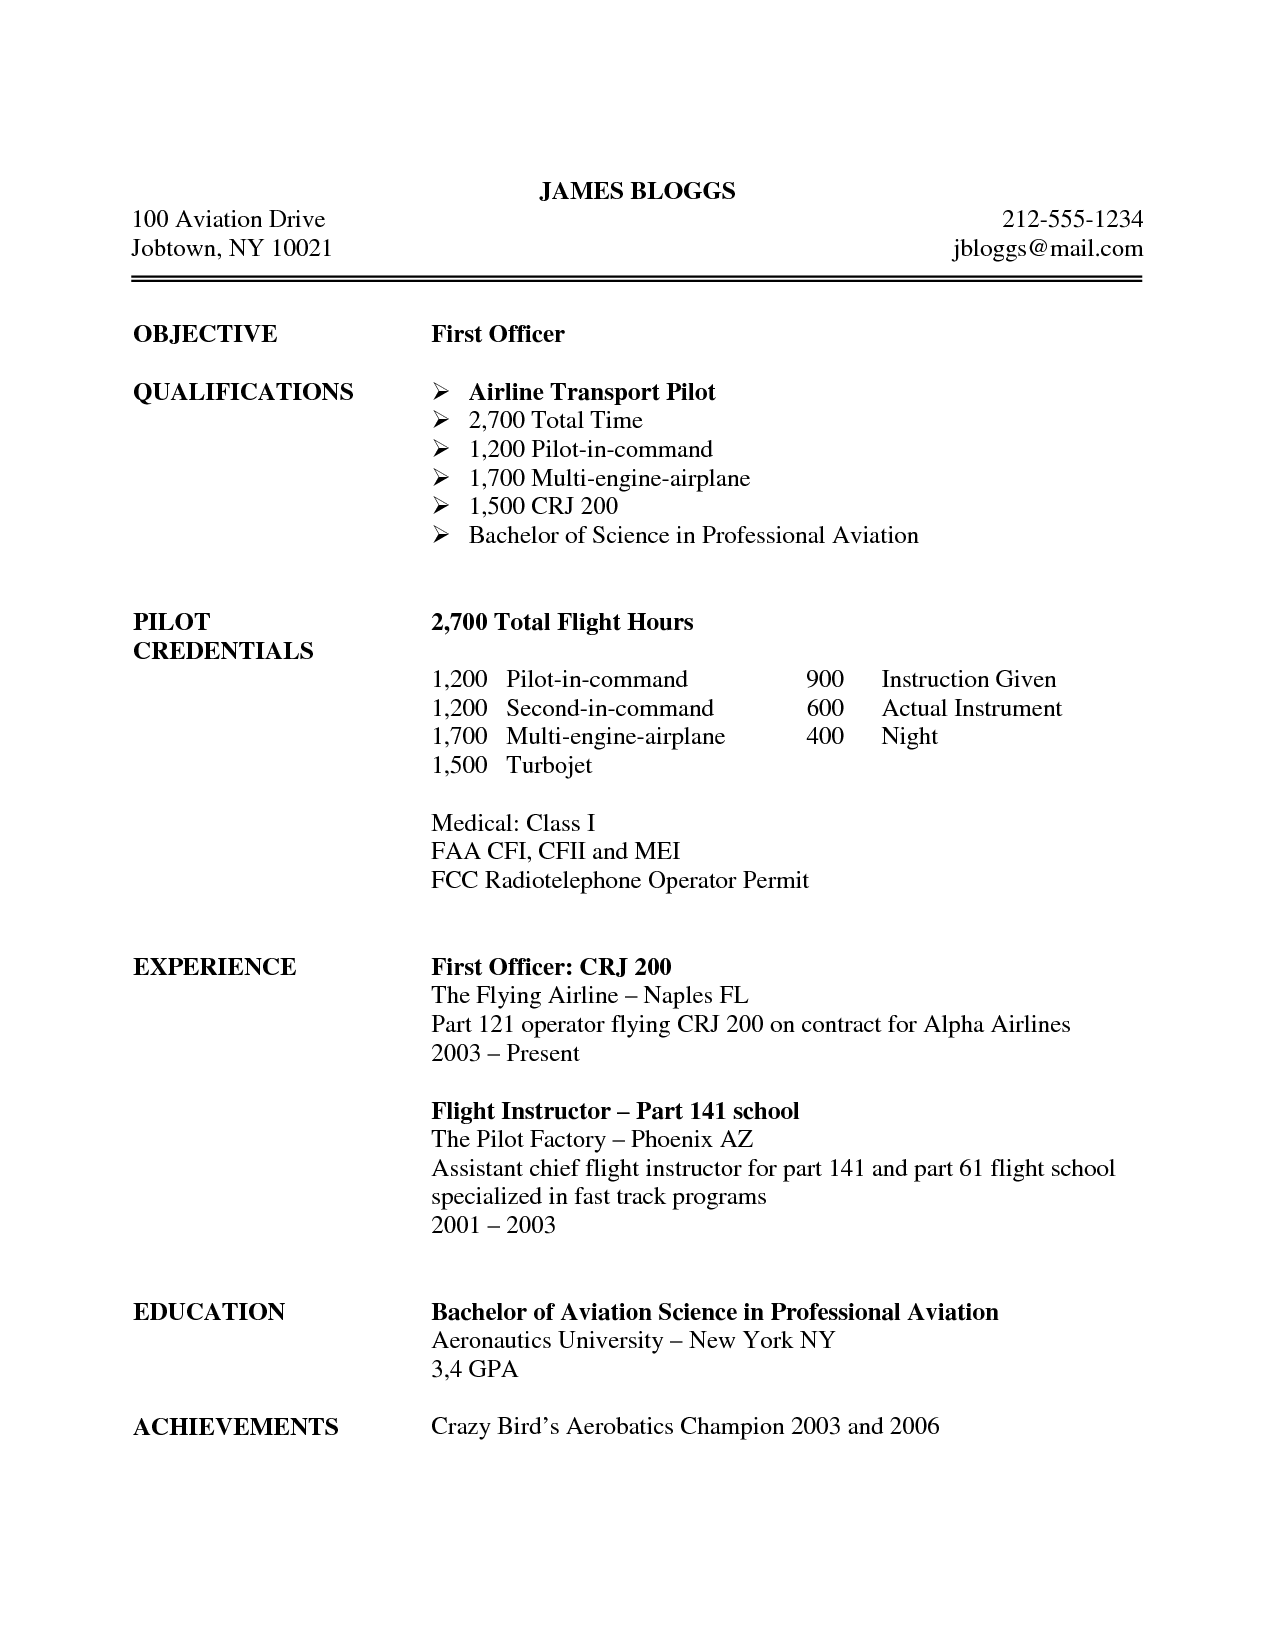 Aircraft Mechanic Resume Template Professional Pilot Resume Professional Pilot Resume